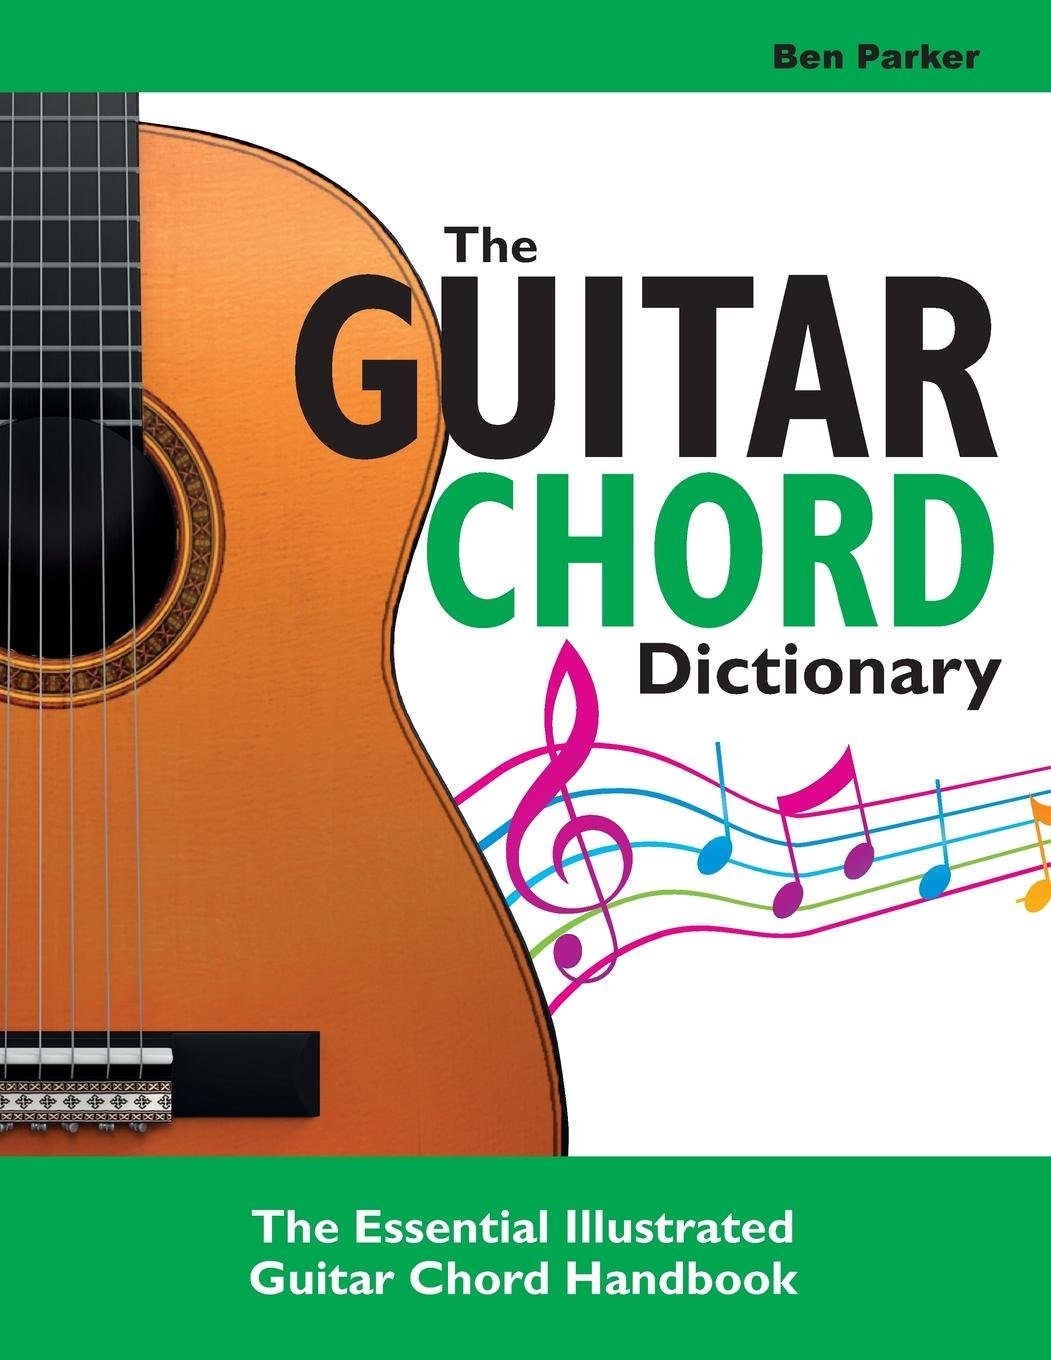 The Guitar Chord Dictionary The Essential Illustrated Guitar Chord